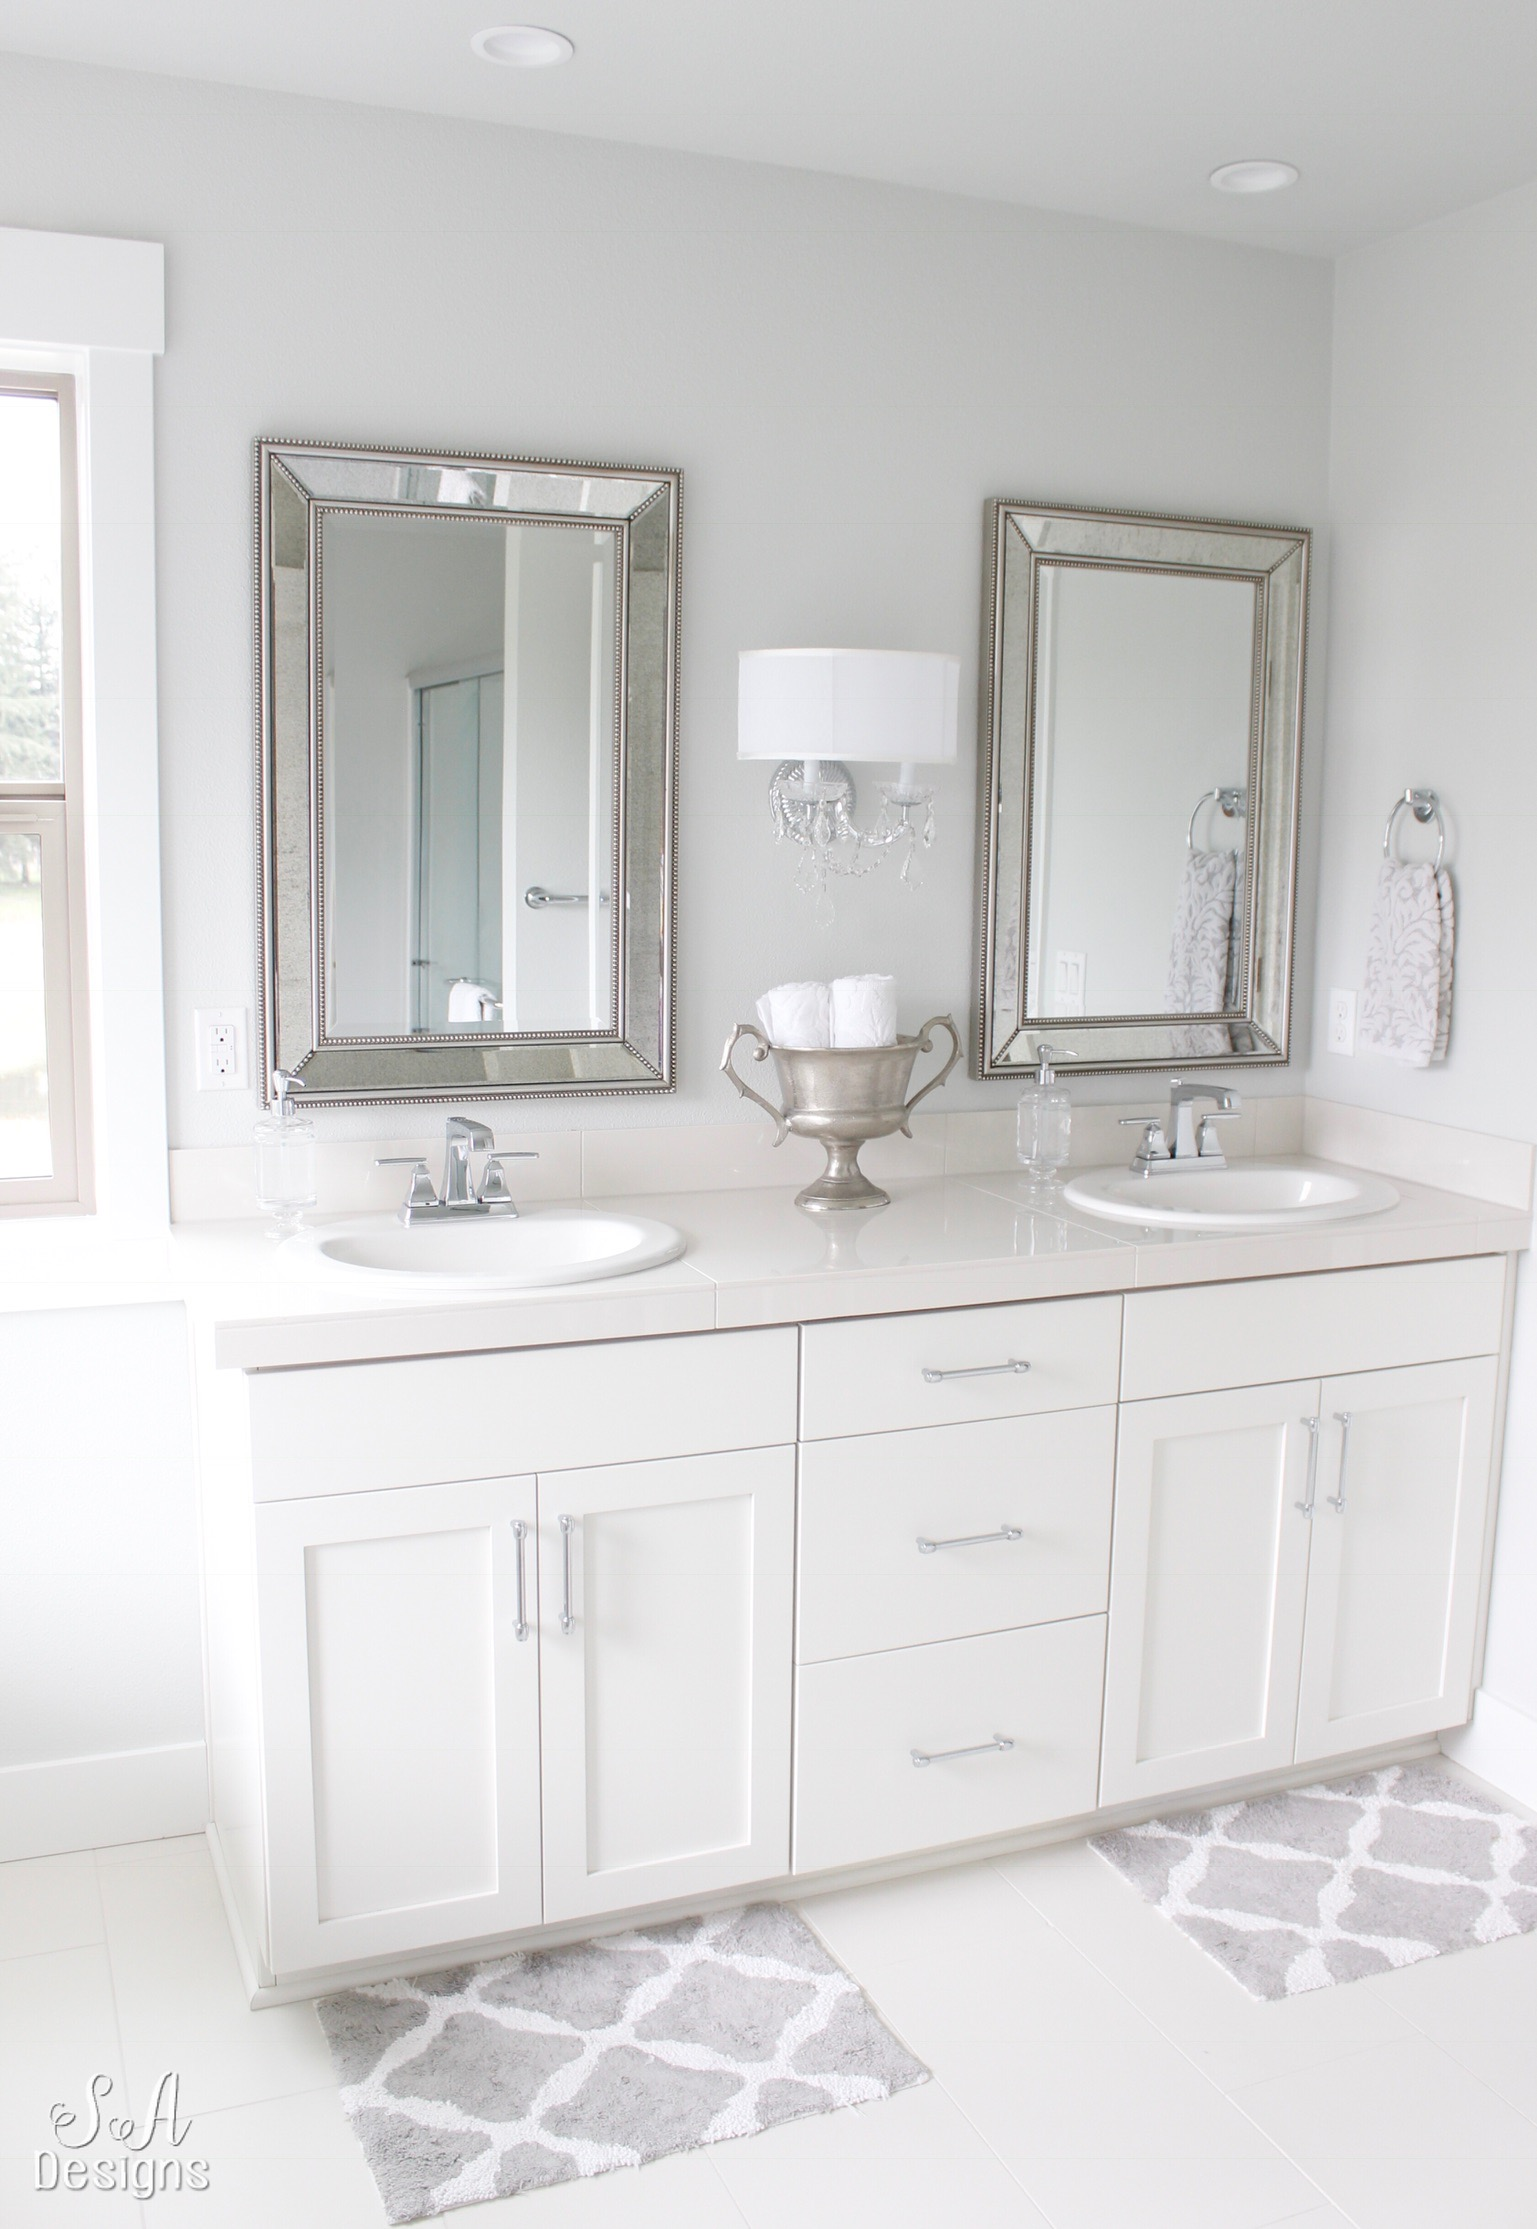 House Tour Master Bath: Feature Friday: Summer Adams Designs